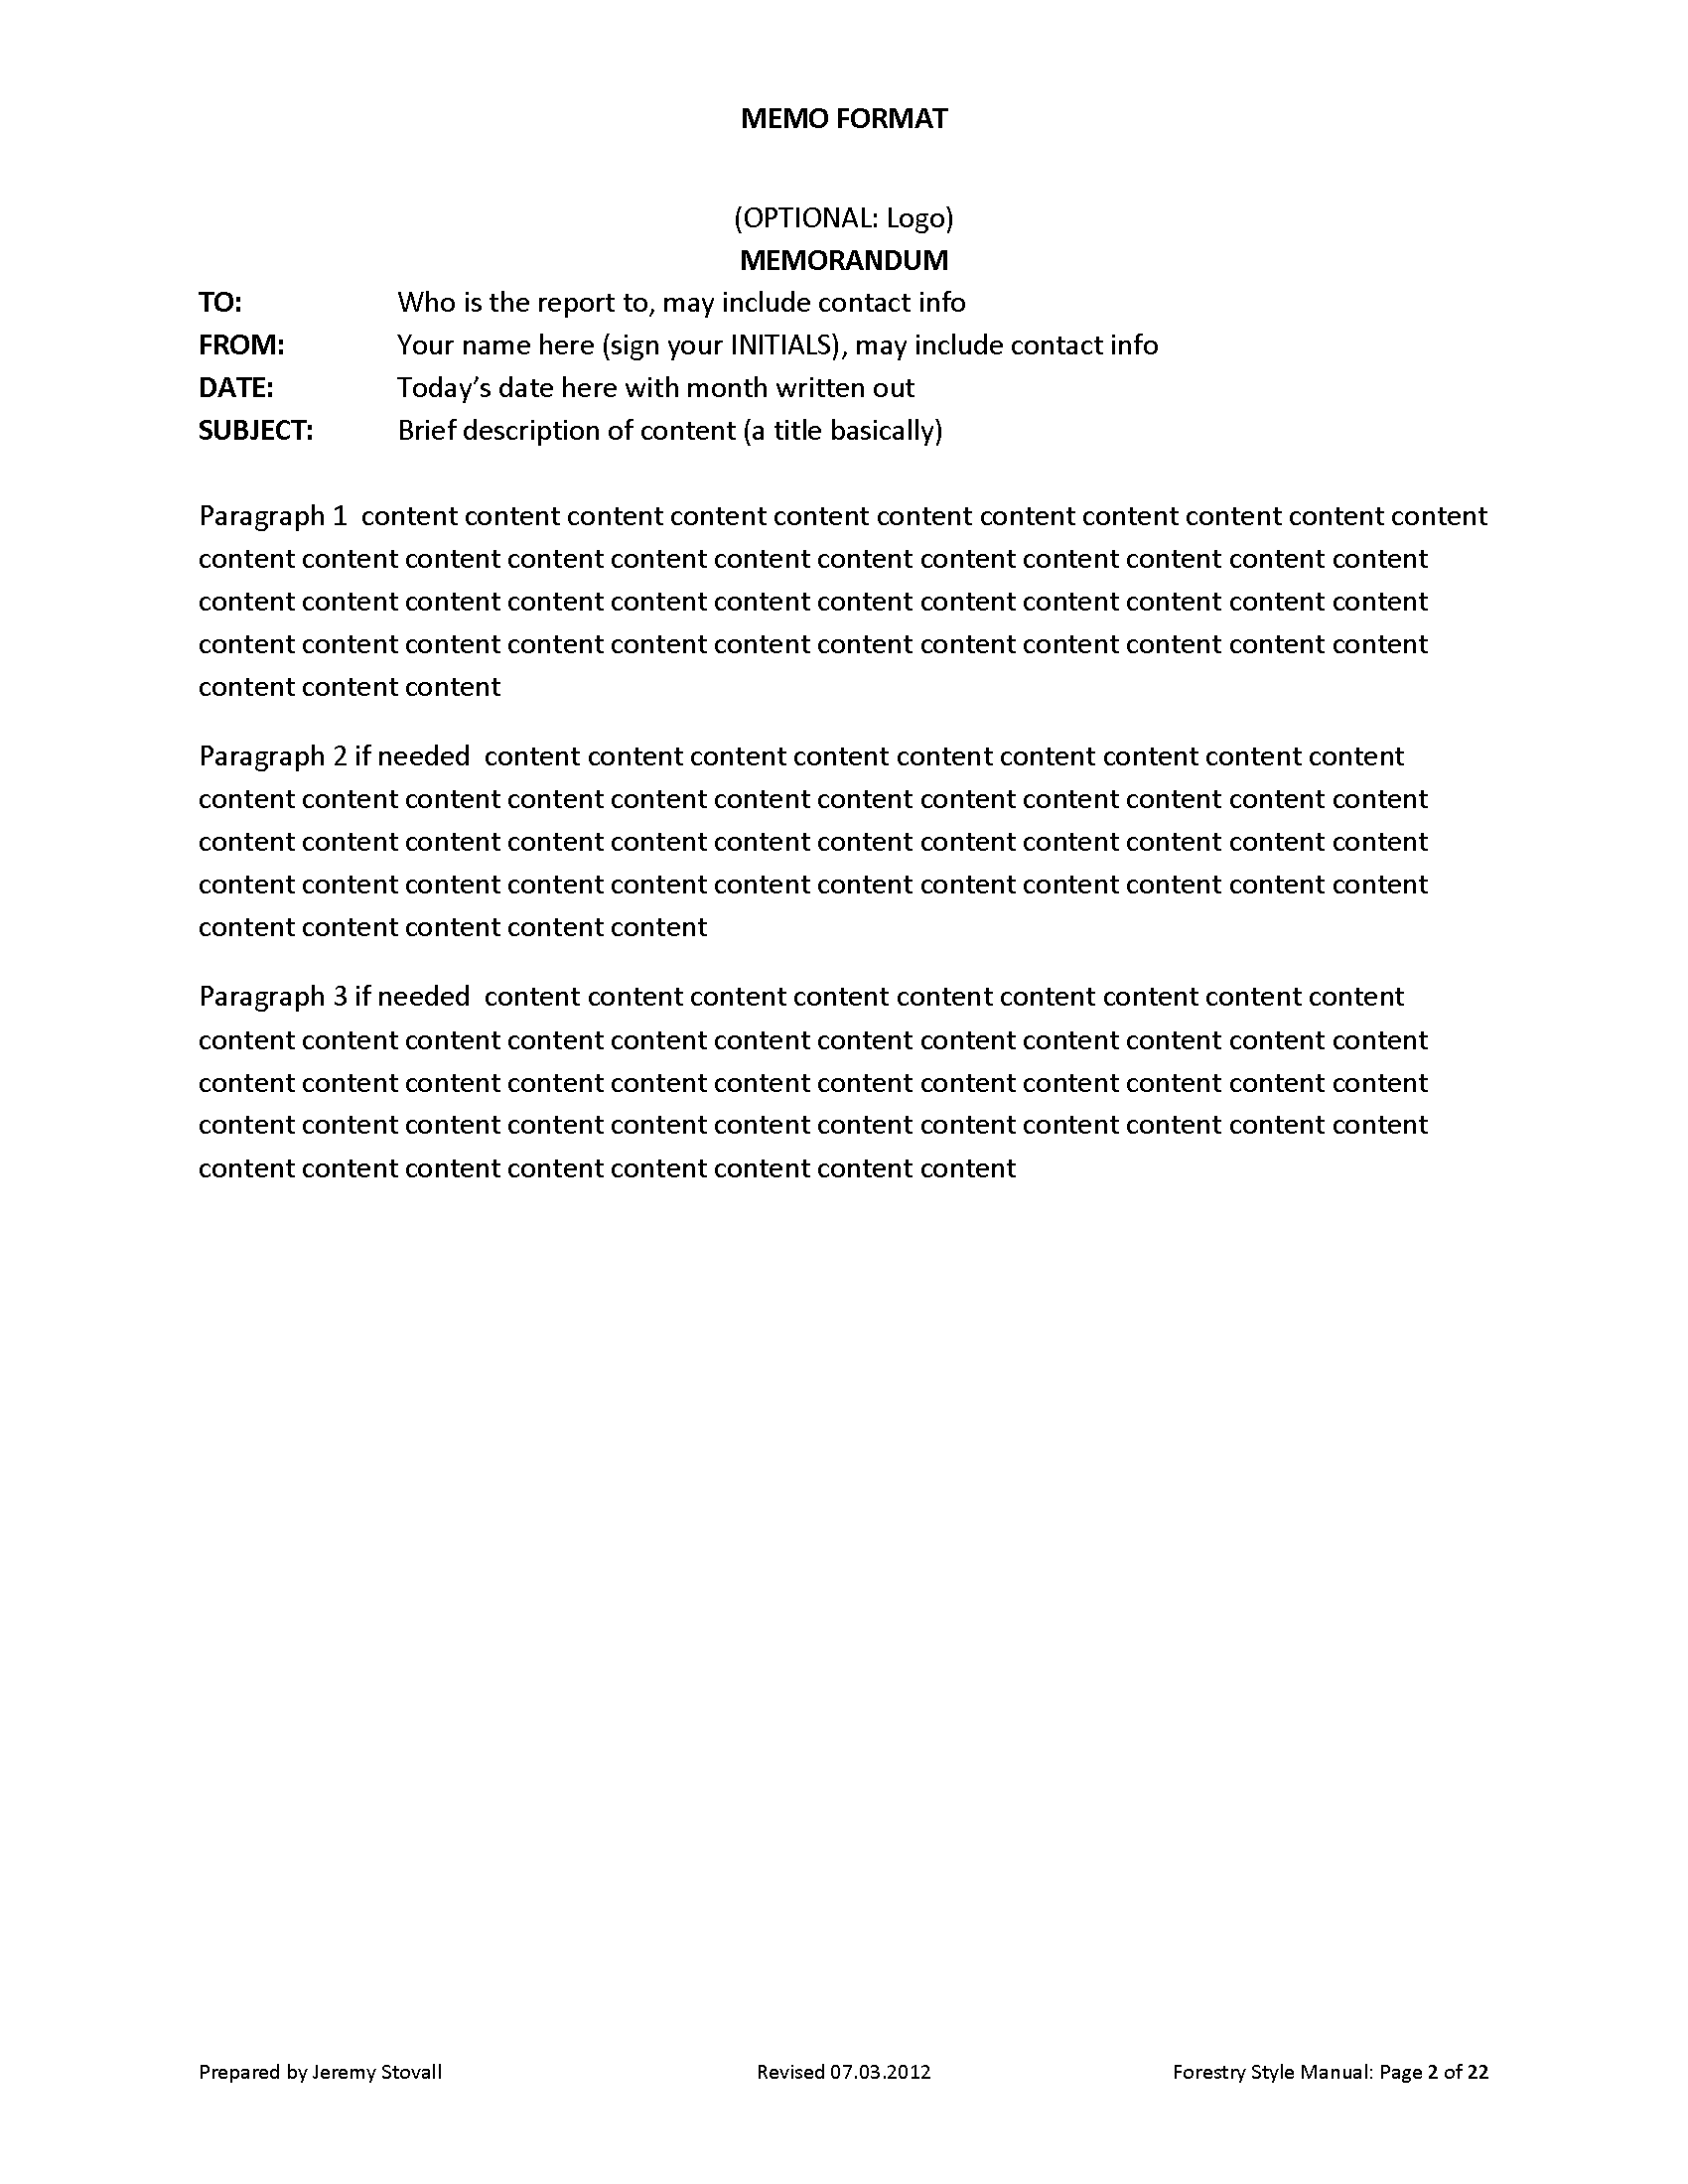 Memo Formatting Format For Memos Oklmindsproutco Dtk Templates